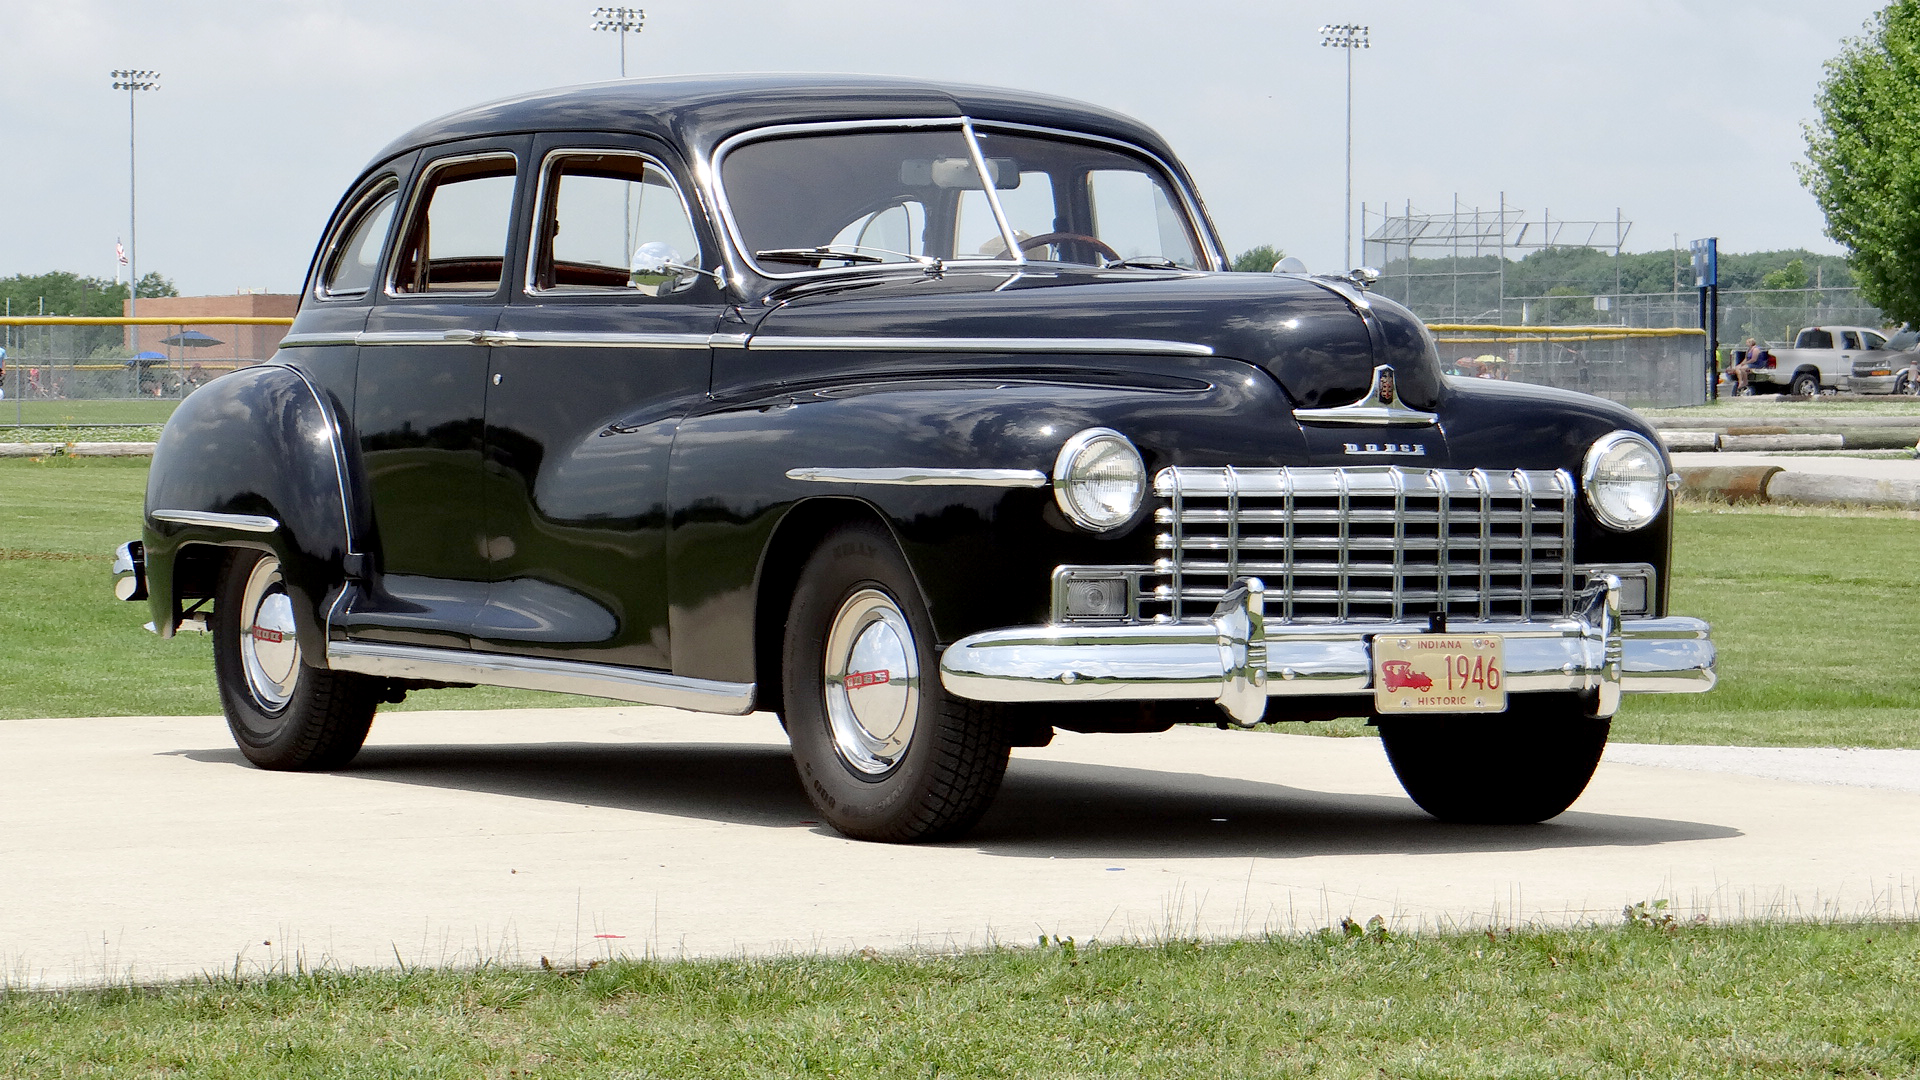 file 1946 dodge d24c 4 door sedan 274 jpg